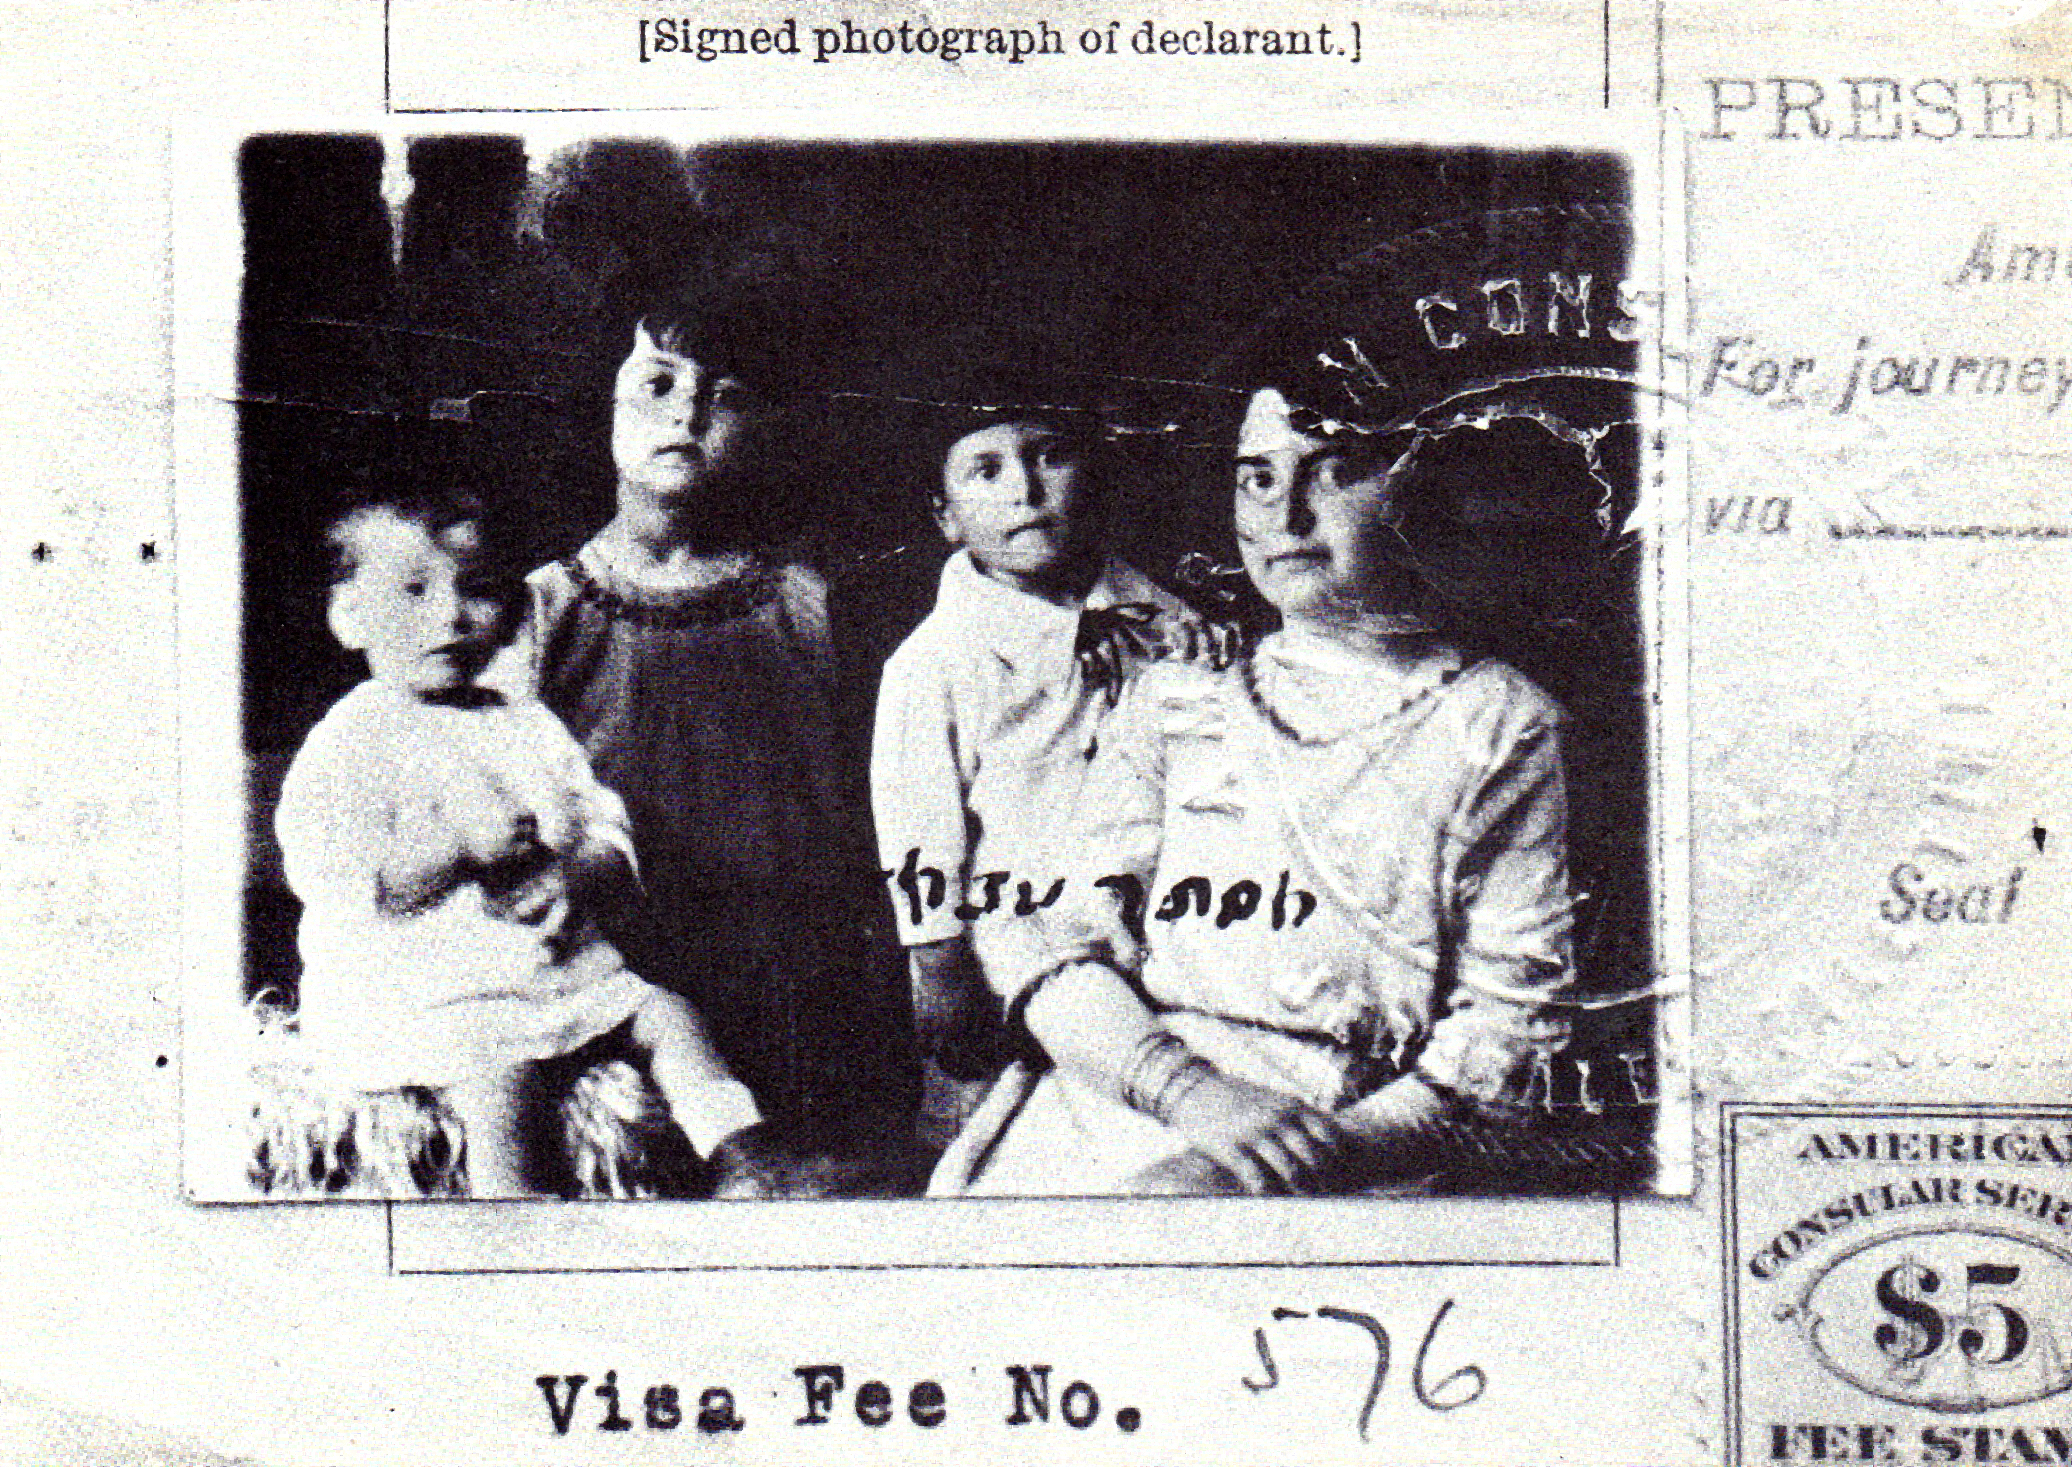 Visa photo from 1923 when (from left to right) Adele, Fritzie, Abe, and Steta came to the U.S.